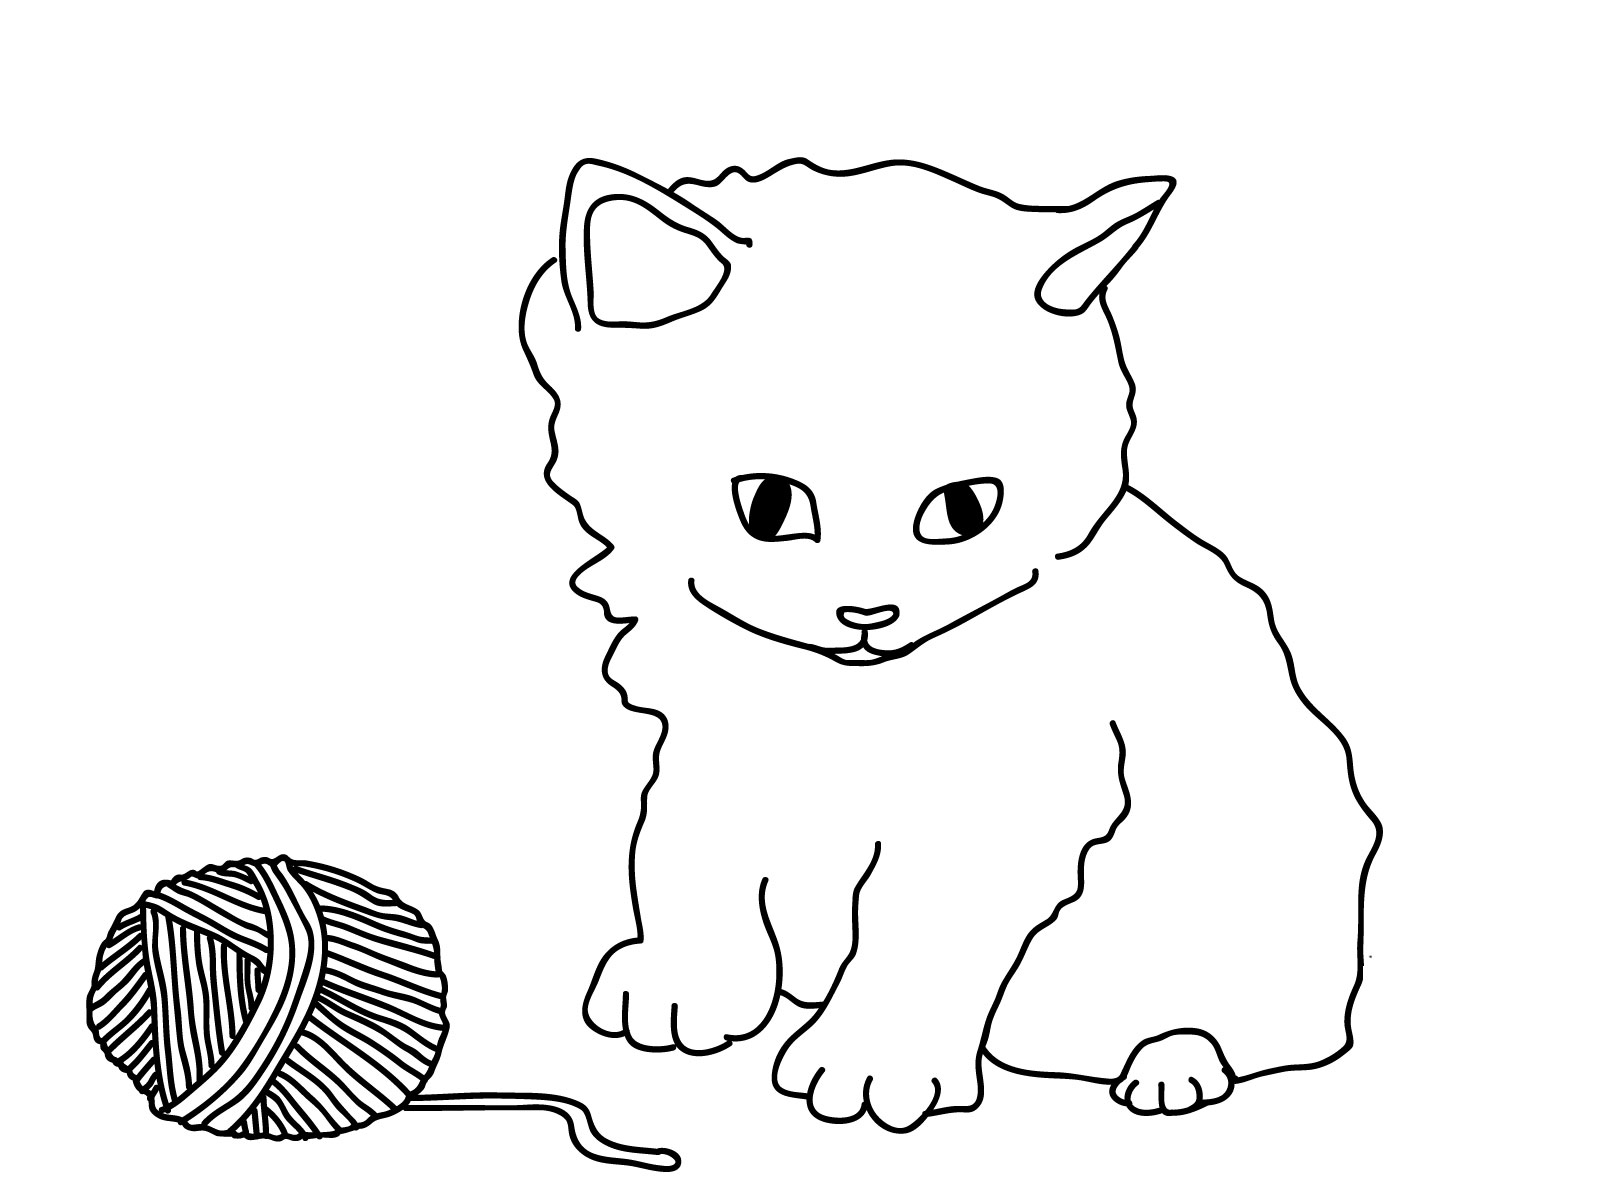 kitty coloring free printable kitten coloring pages for kids best coloring kitty